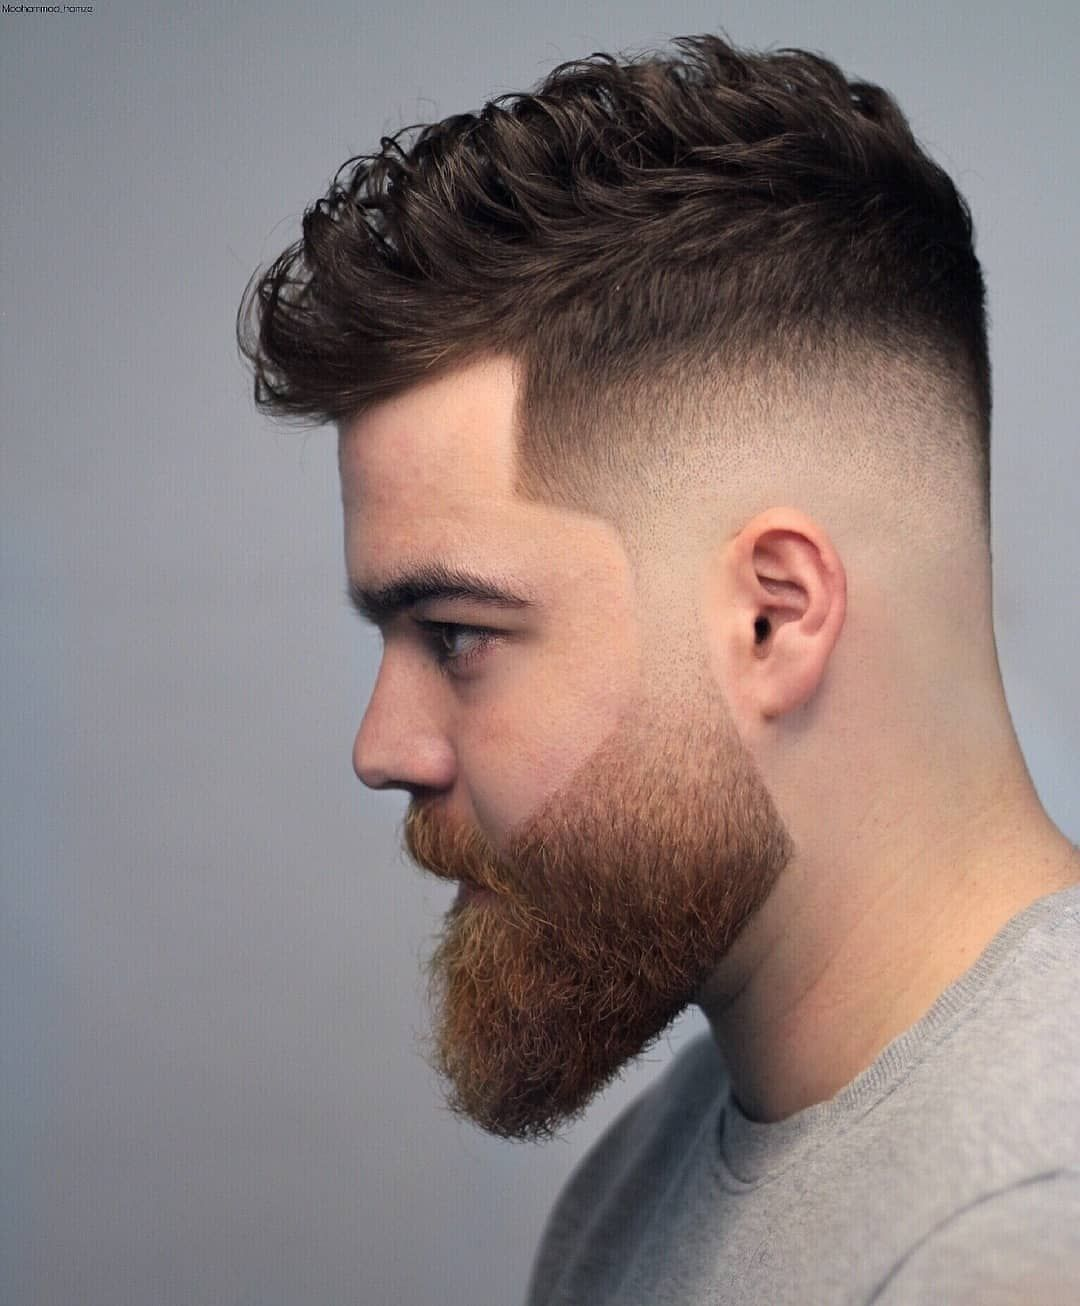 Follow Menluxhair For Daily Men Haircuts And Trending Hairstyles Rate This 1 10 Fade Haircut With Beard Hairstyles Haircuts Beard Haircut